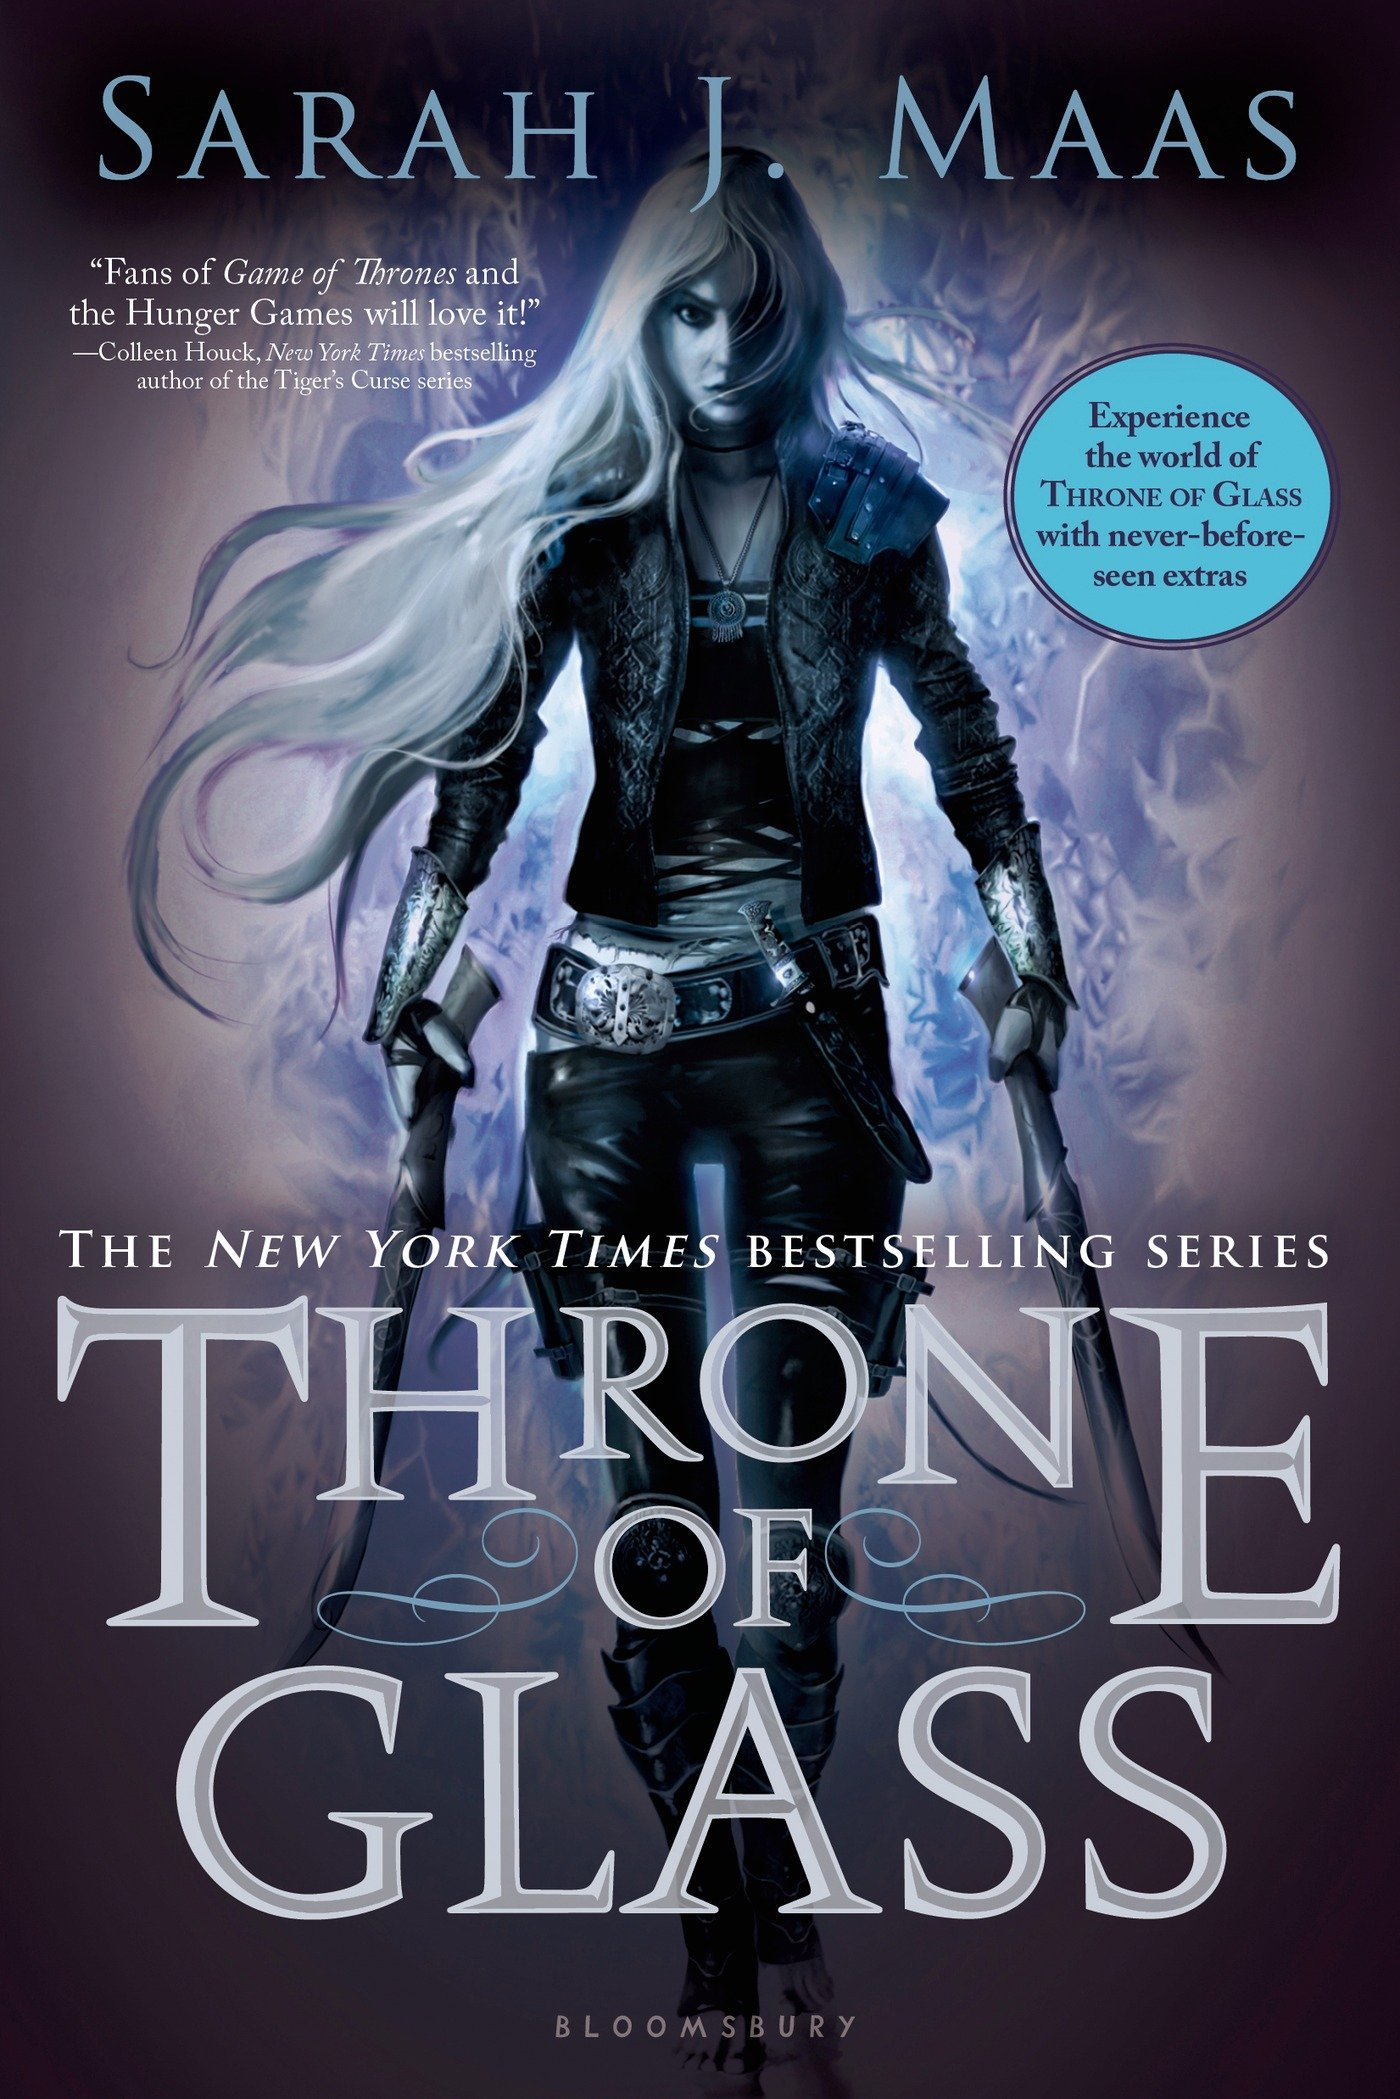 Review – Throne of Glass by Sarah J. Maas